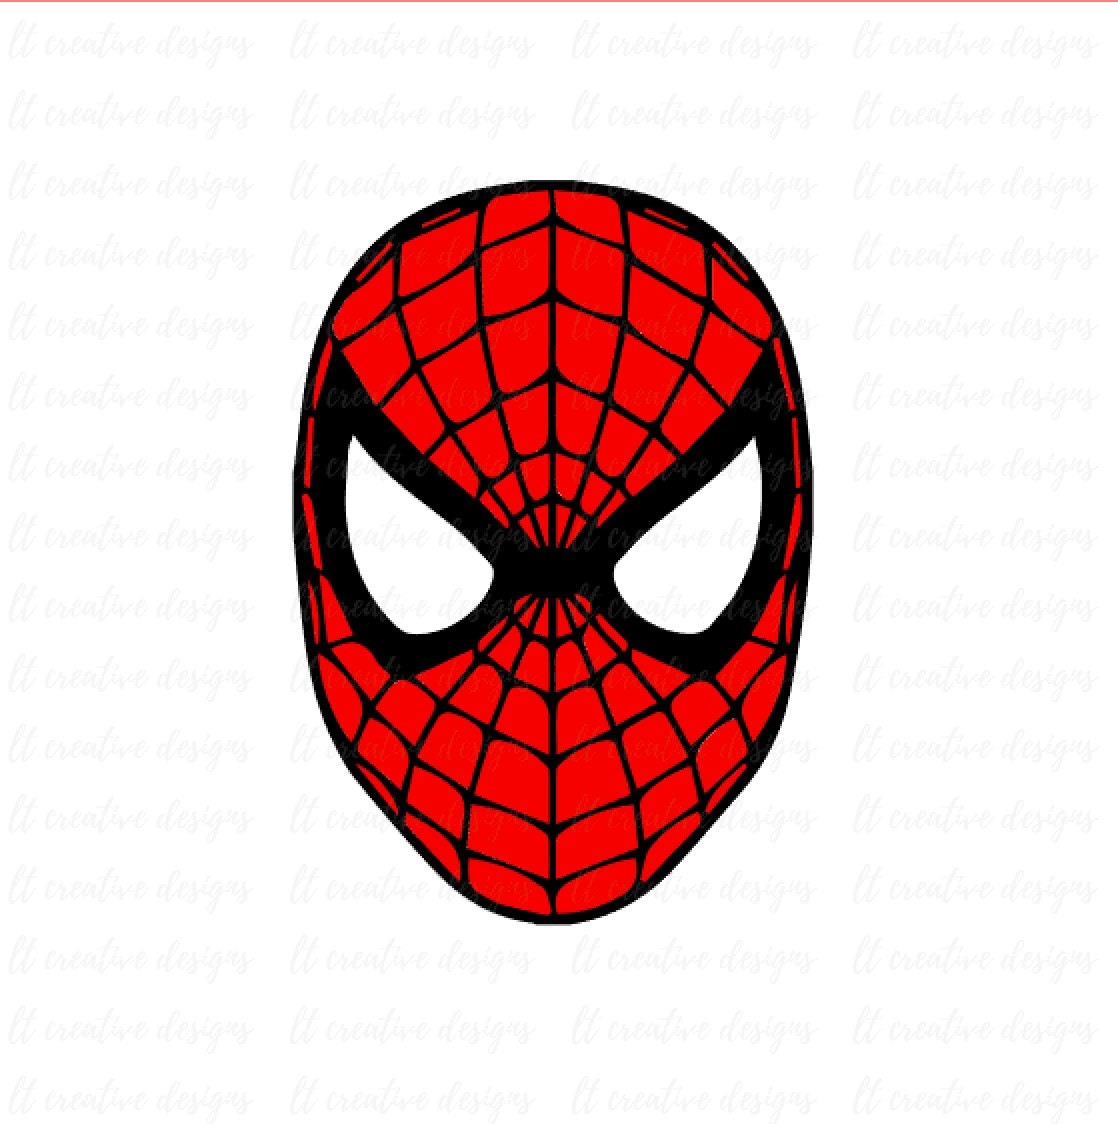 Clip Art Spiderman Clip Art spiderman clipart etsy svg face silhouette cut files cricut files